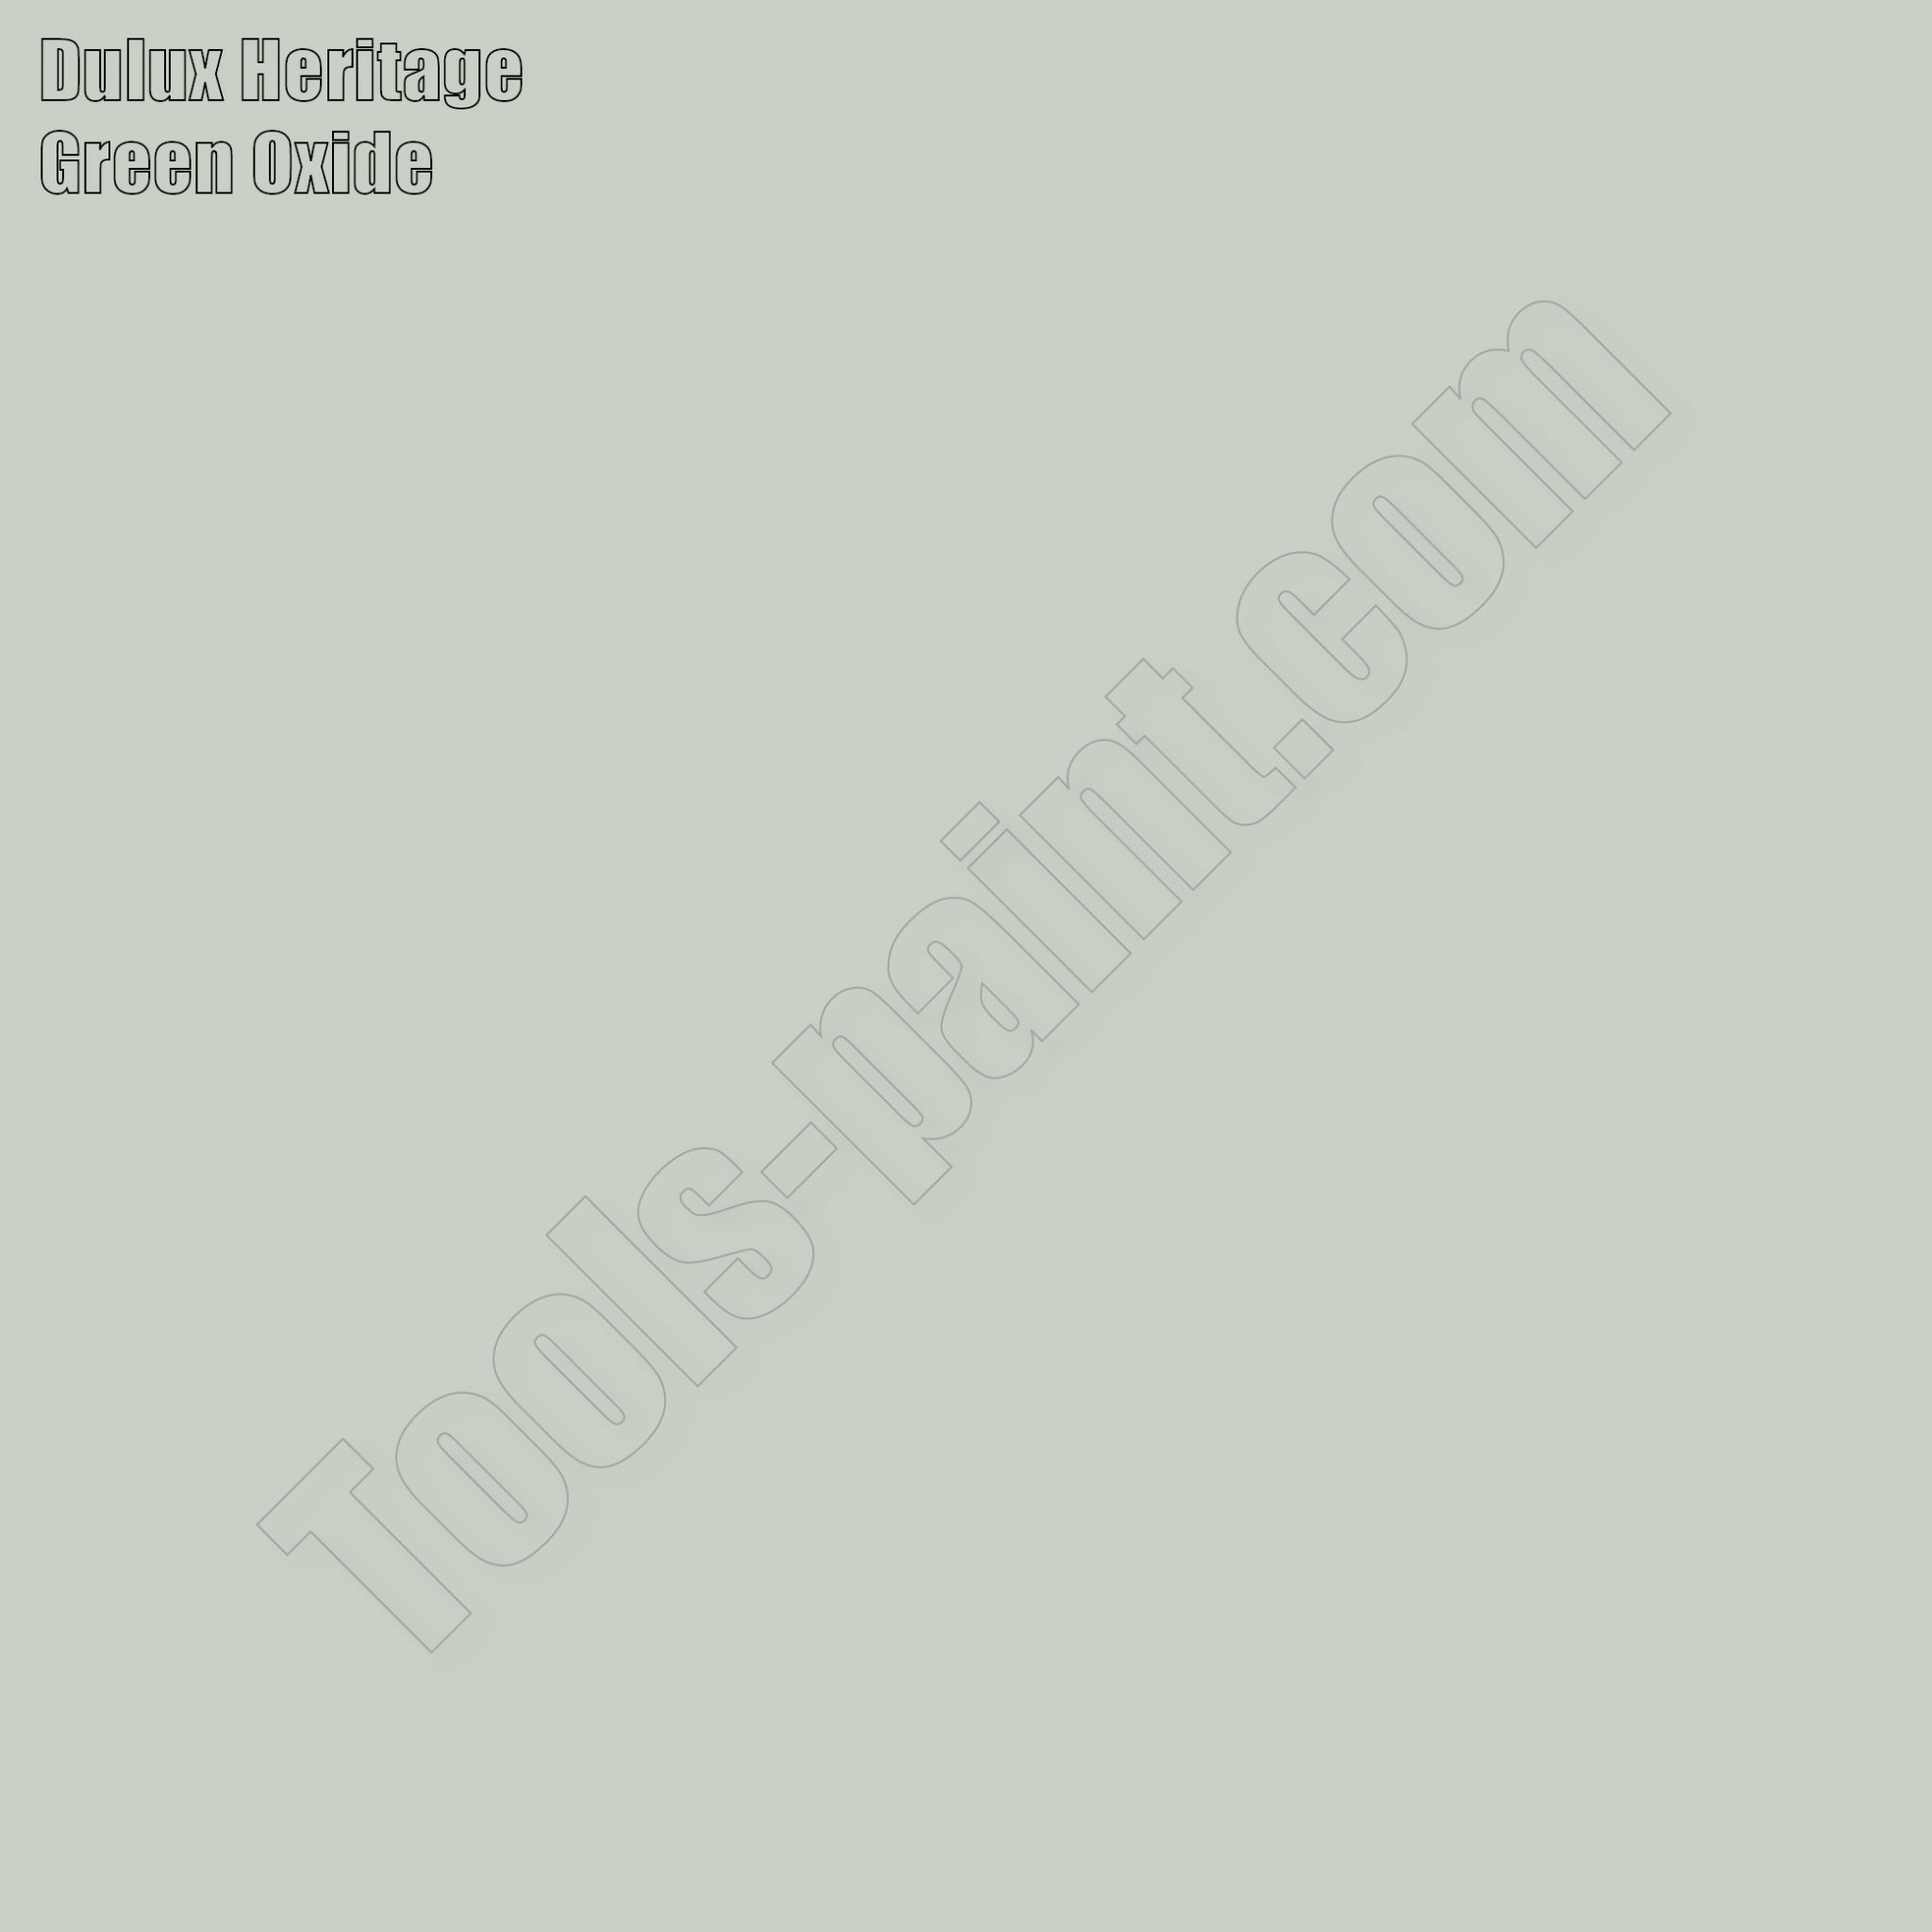 Dulux Heritage Green Oxide